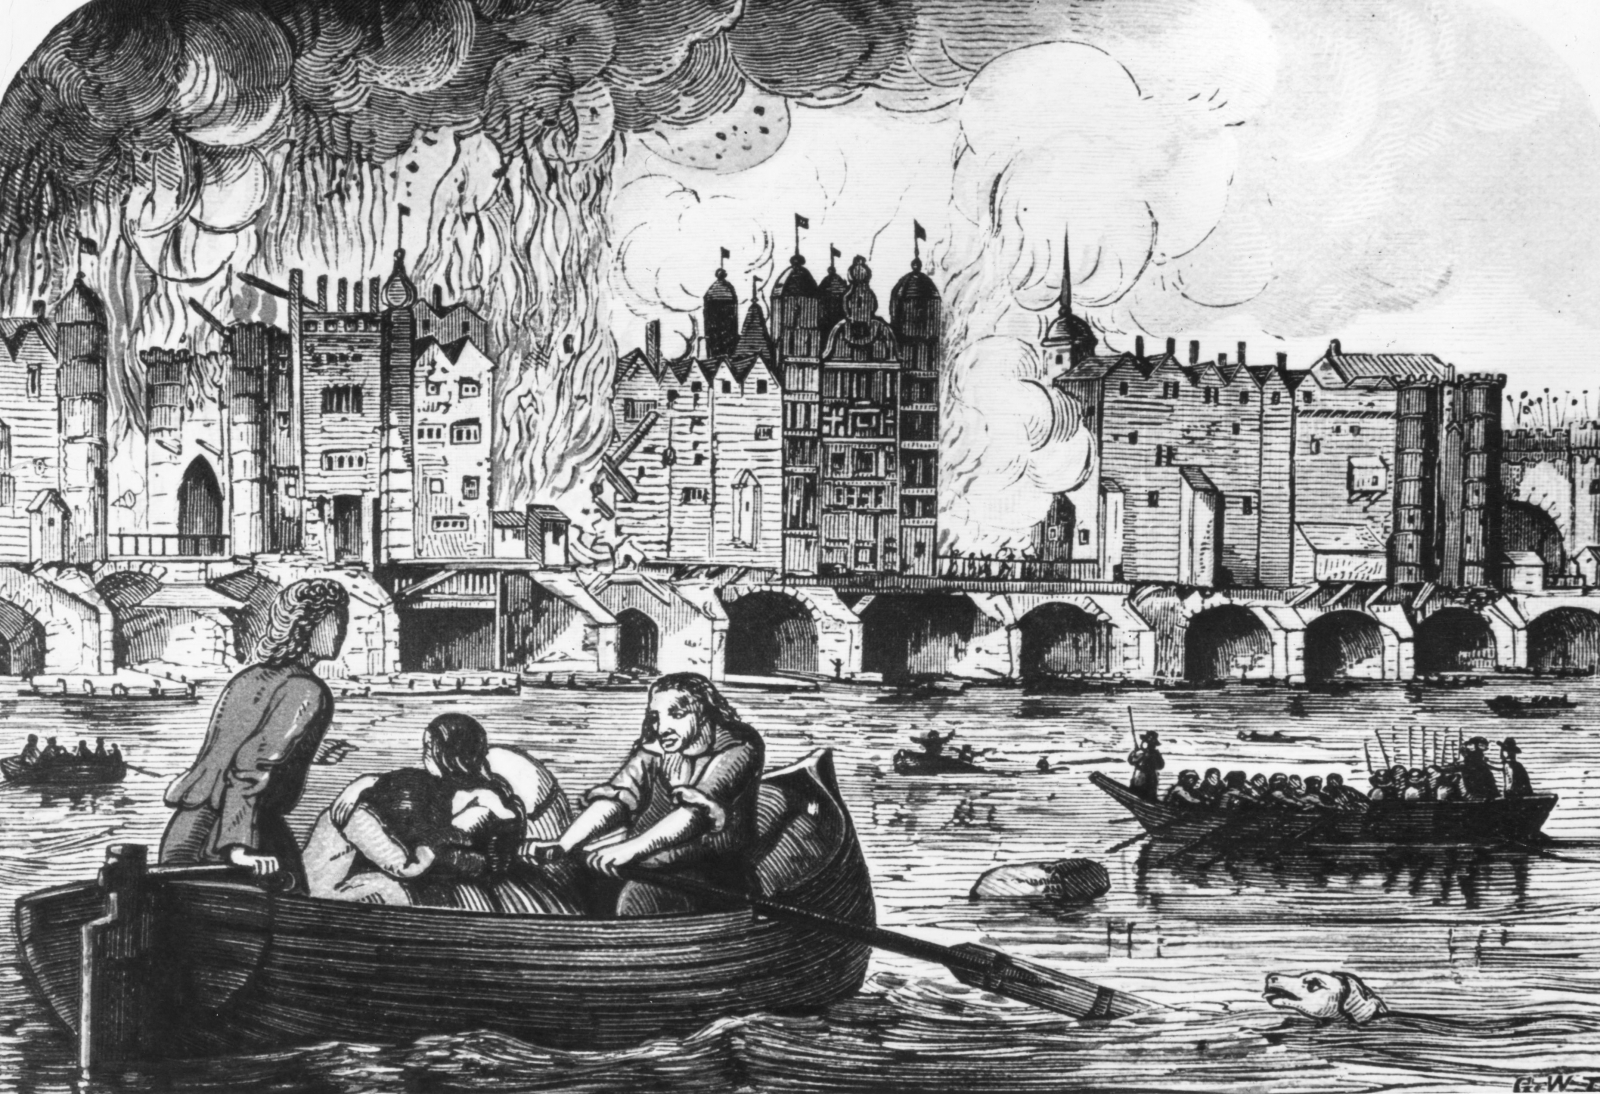 the great fire of london impact Children learn the great fire of london started accidentally in a bakery but at the time, many feared it was a terrorist attack and wanted revenge.